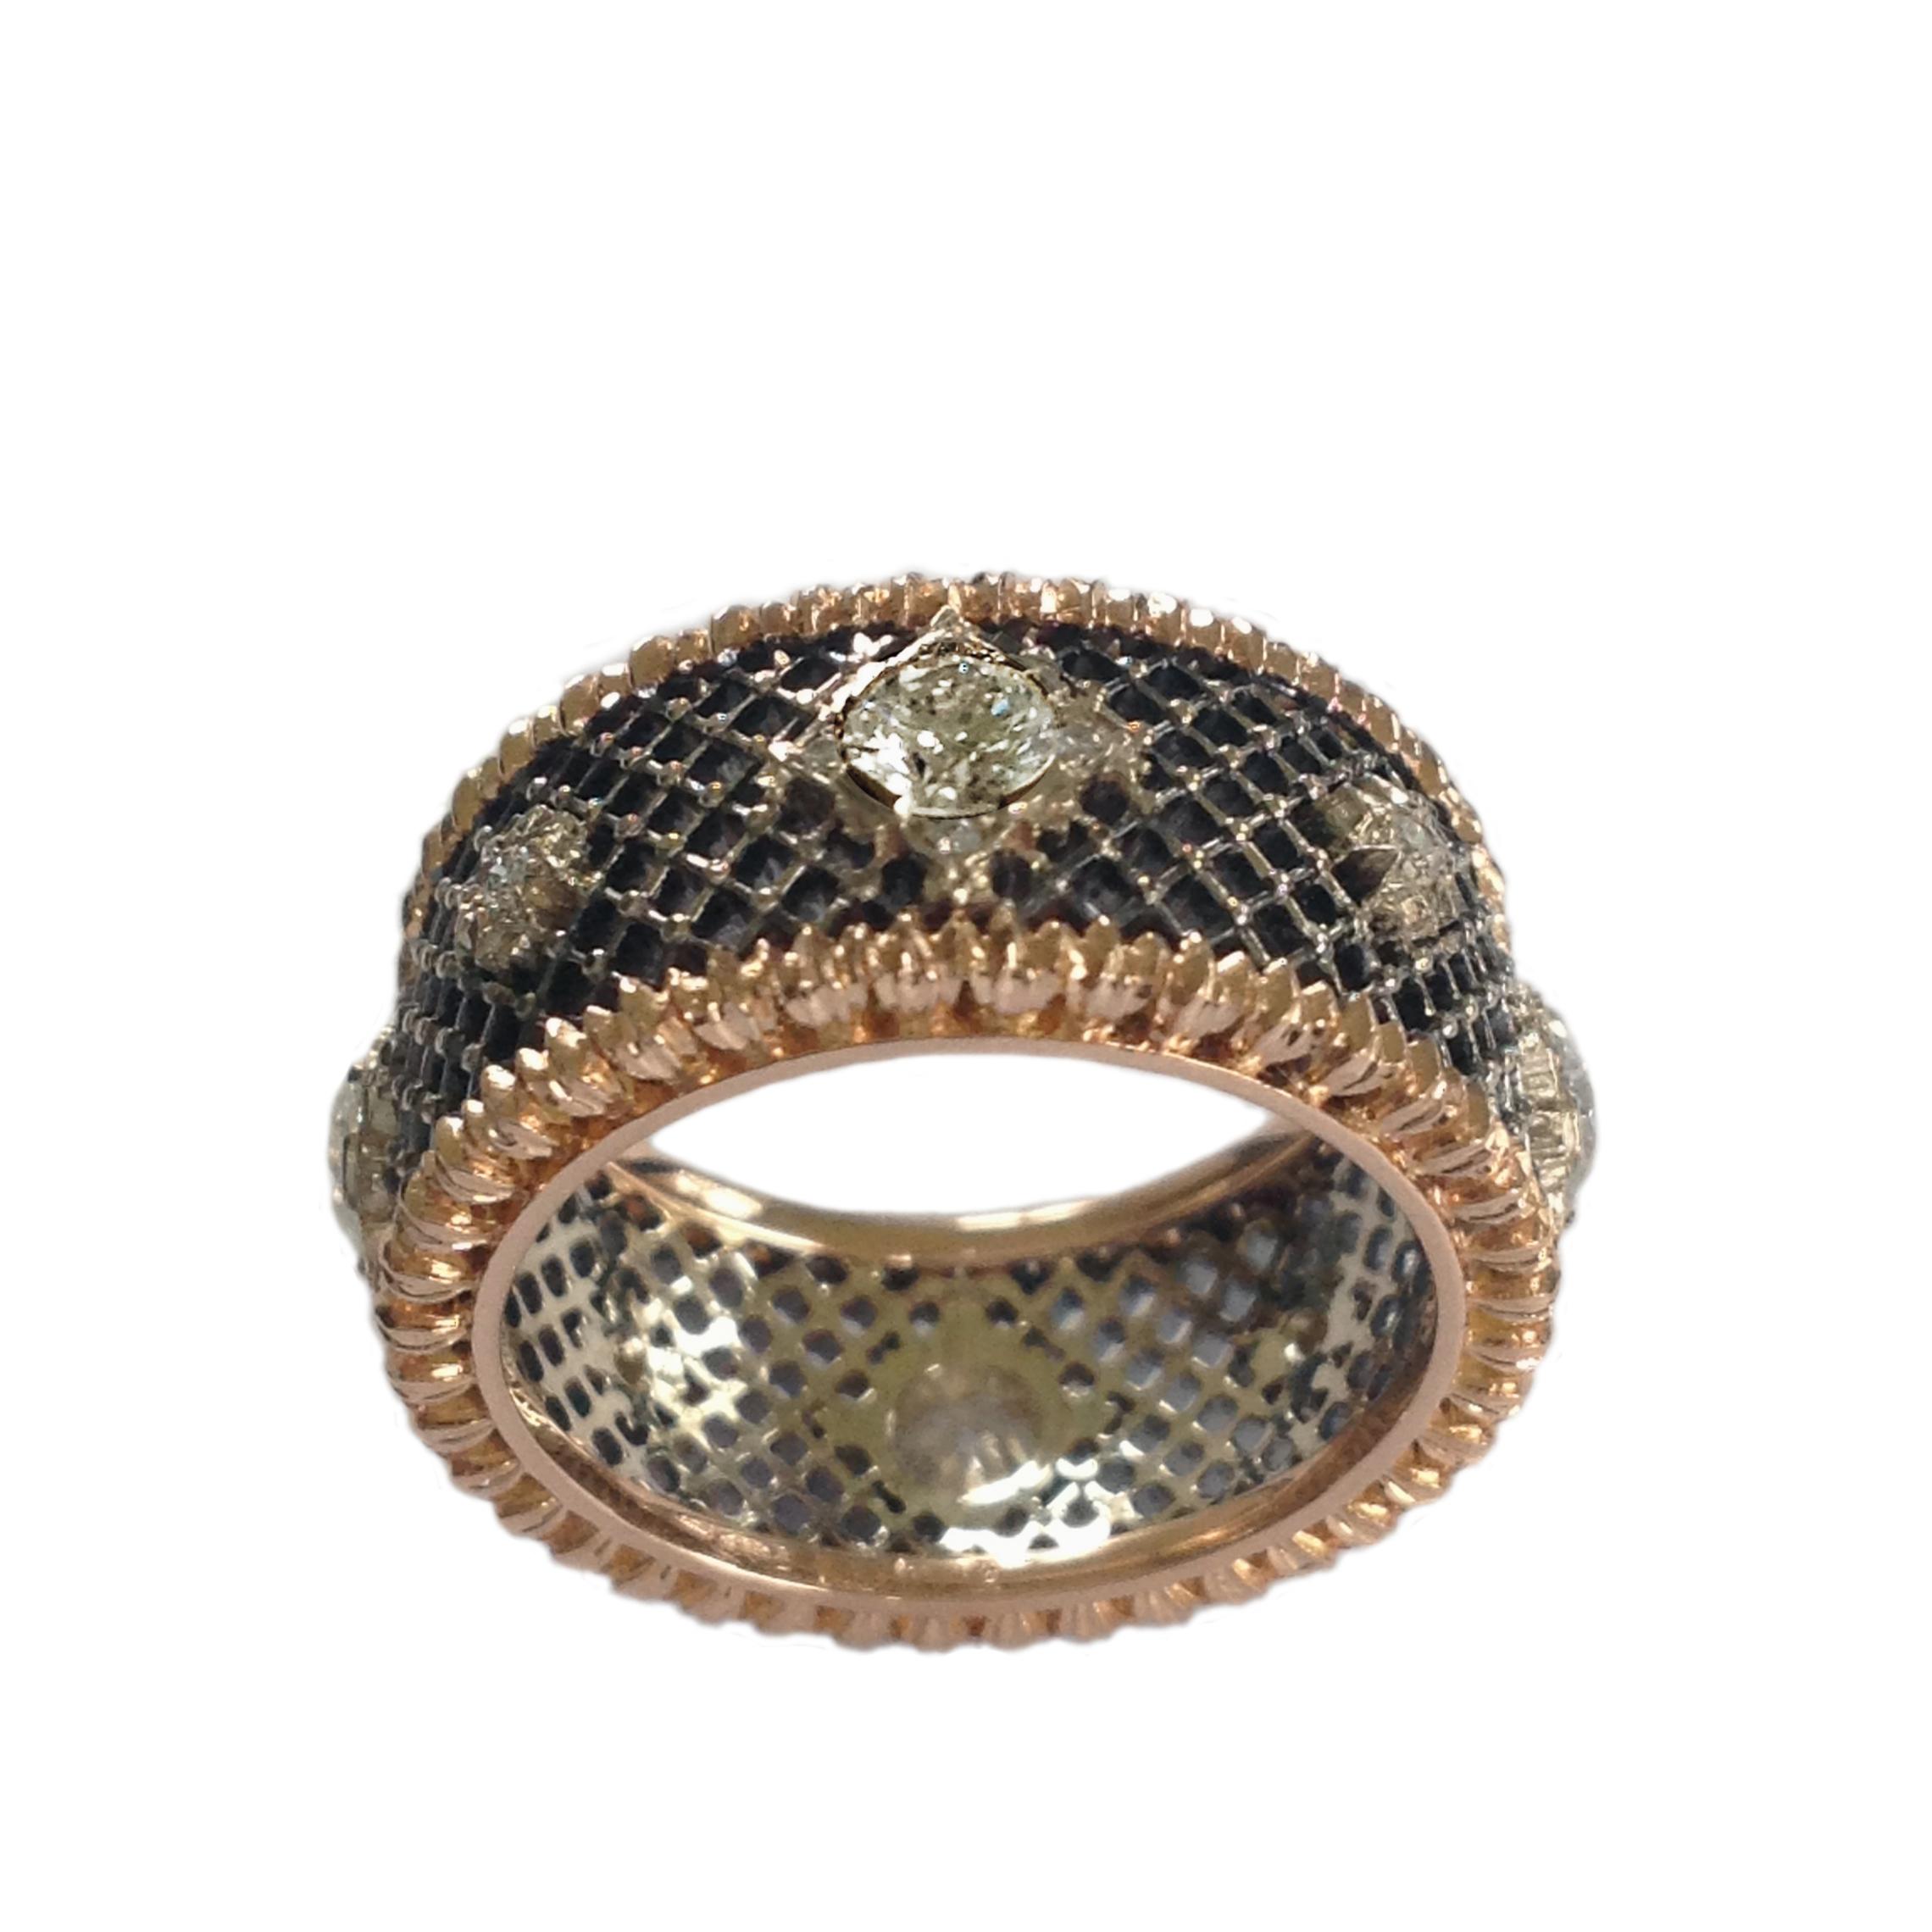 Dalben Diamond Gold Openwork Band Ring